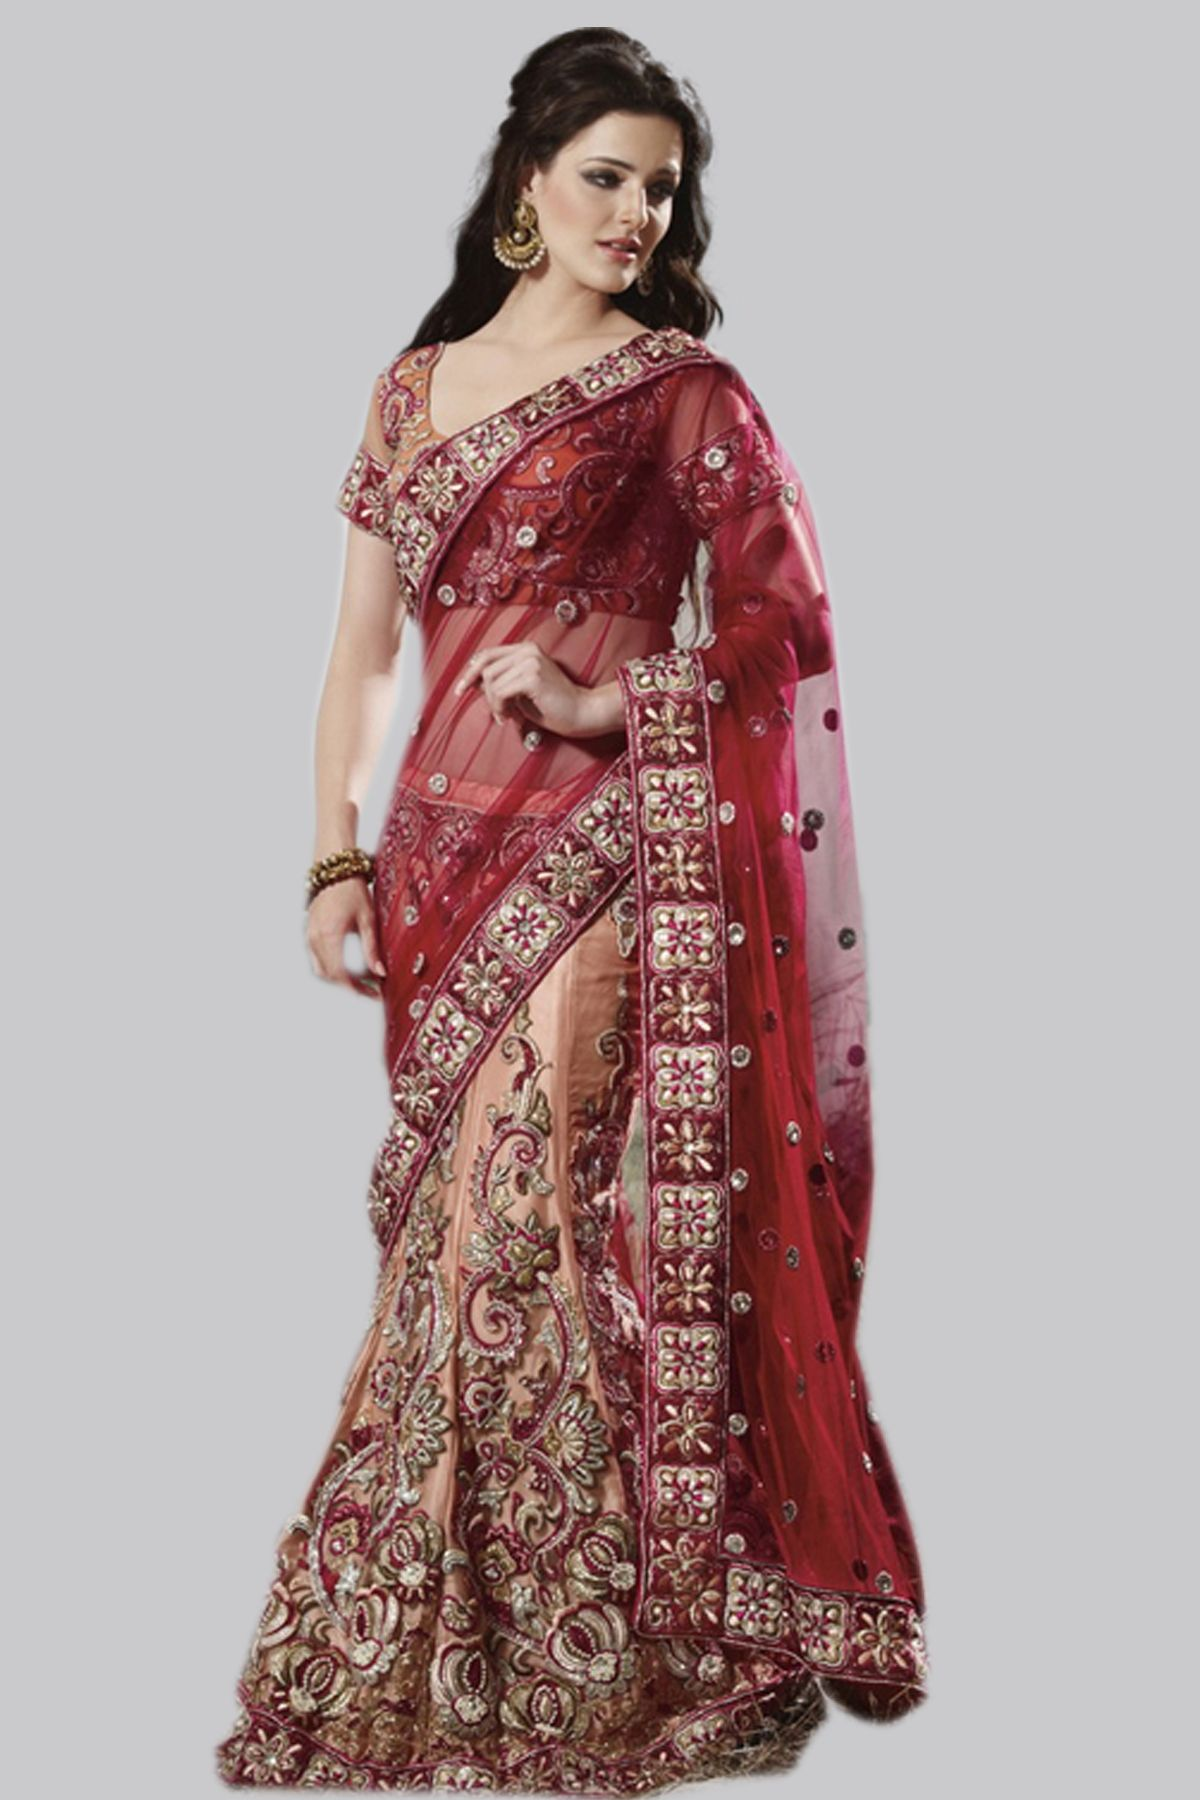 Lehenga Style #Red Saree | INDIA FANS | Pinterest | Kleider